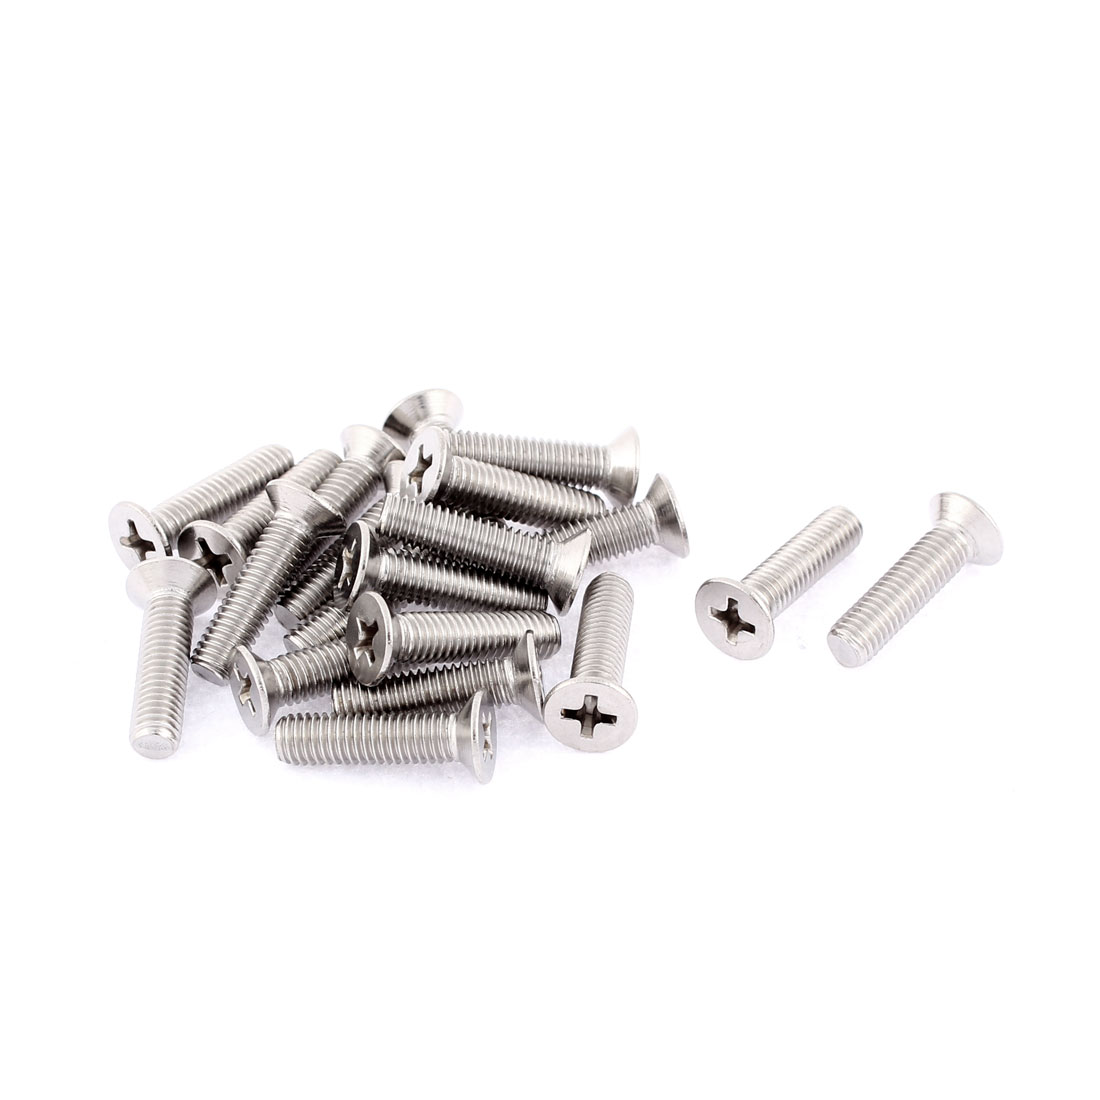 M5 x 20mm Phillips Socket Stainless Steel Countersunk Bolts Screws 20 Pcs